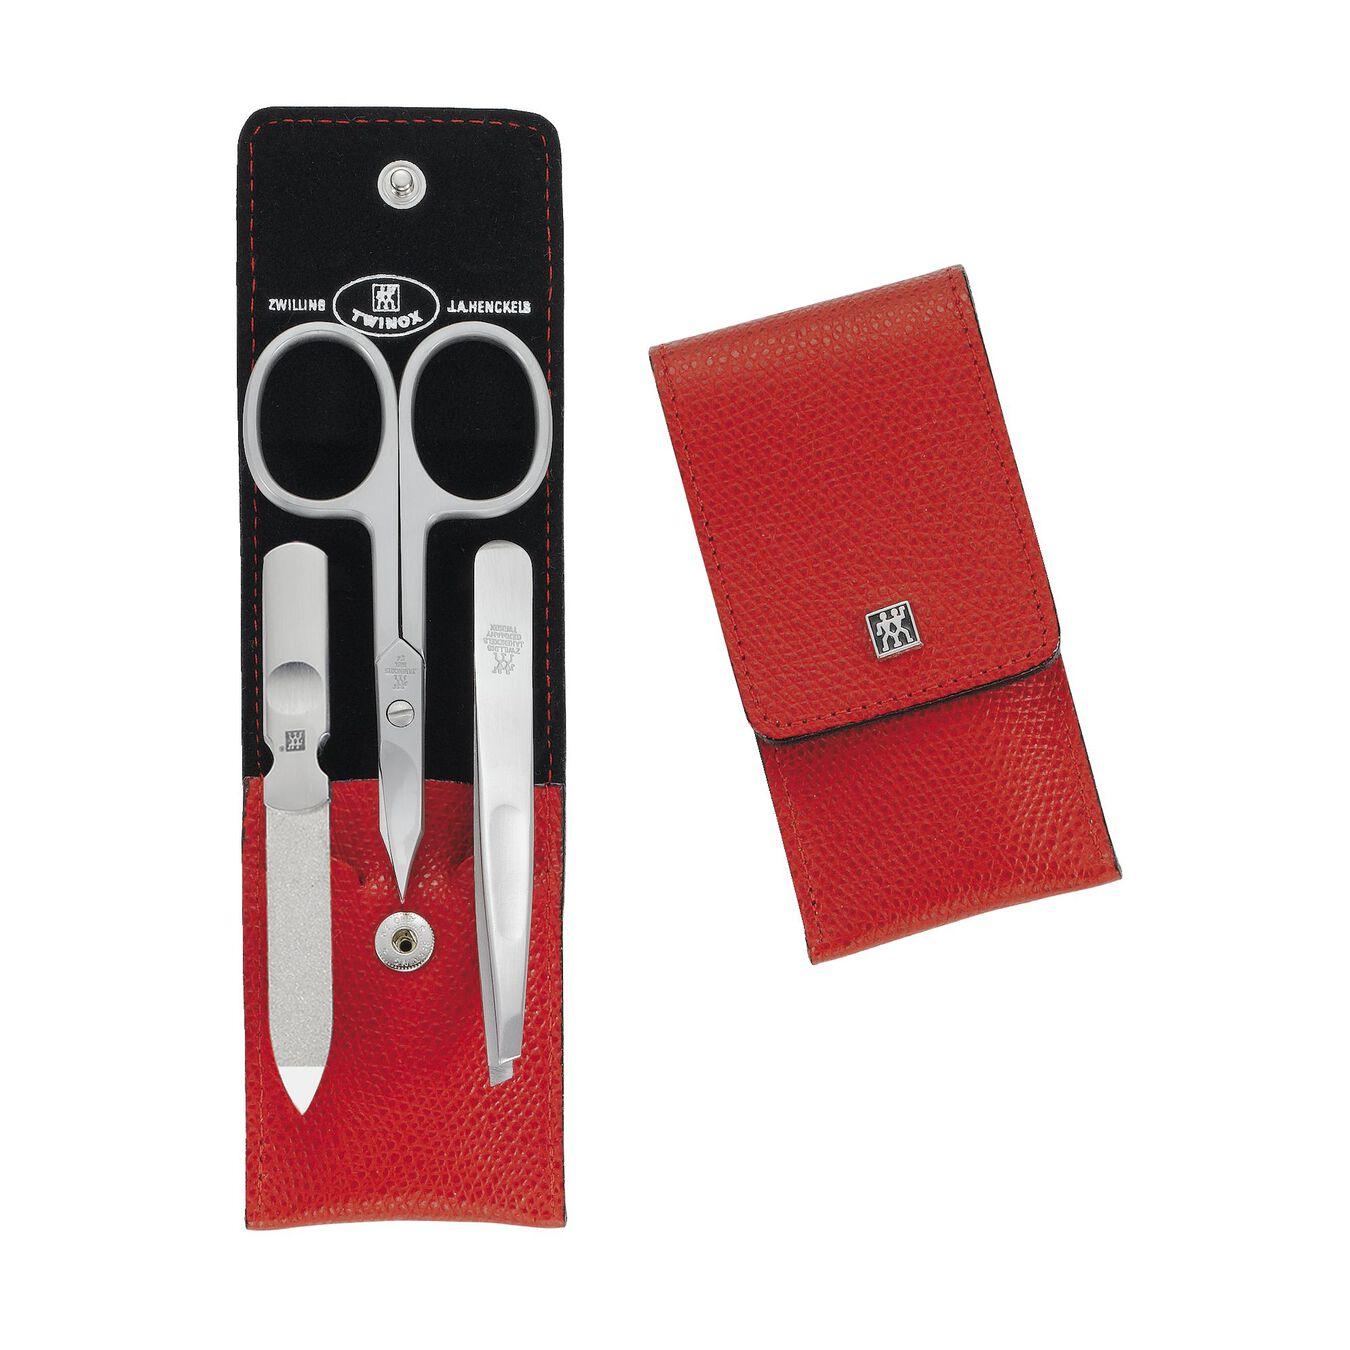 Snap fastener case, 3 Piece | Special Formula Steel | red,,large 1